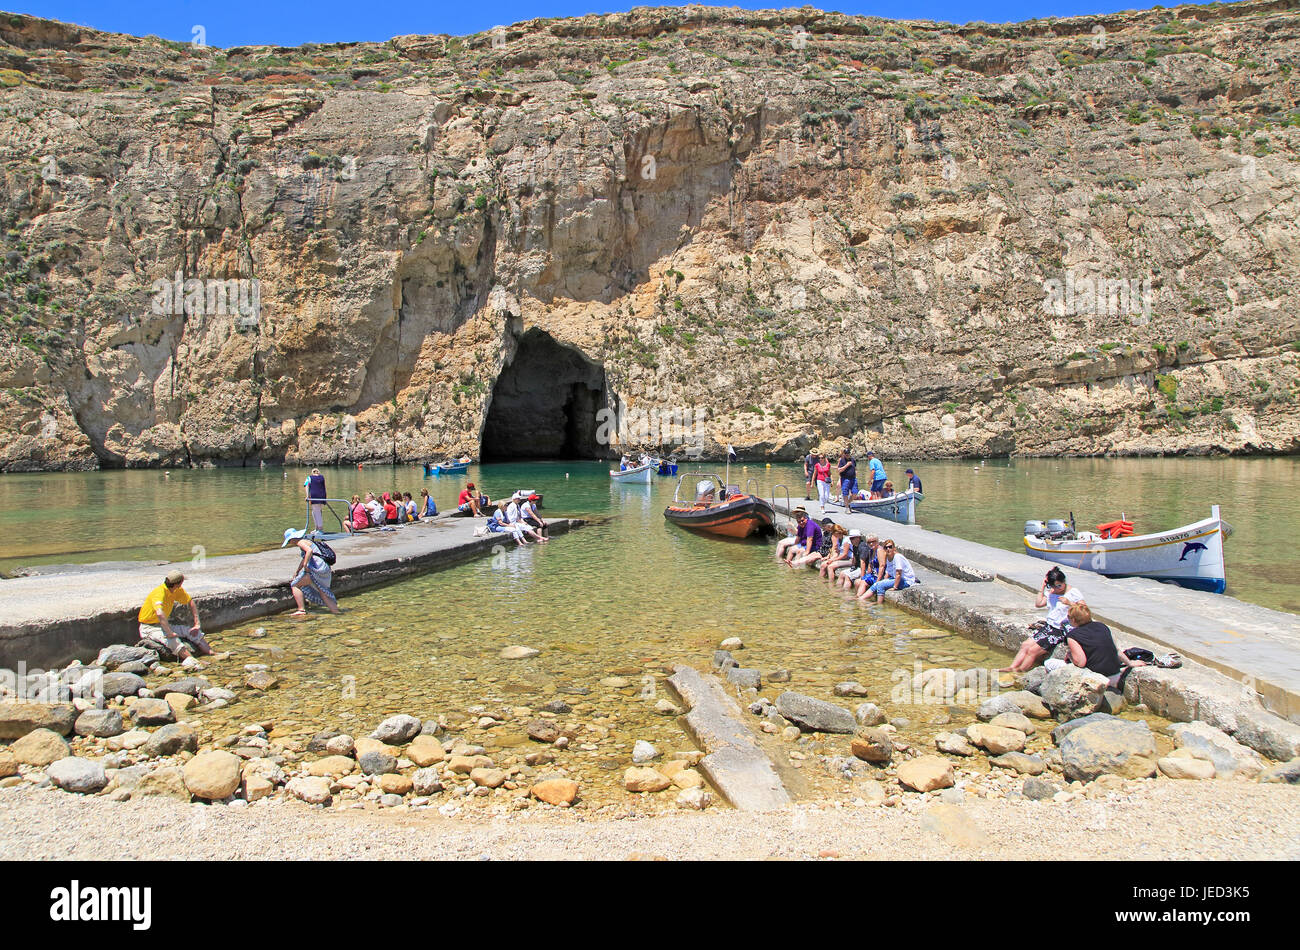 The Inland Sea tourist attraction, Dwerja Bay, island of Gozo, Malta - Stock Image